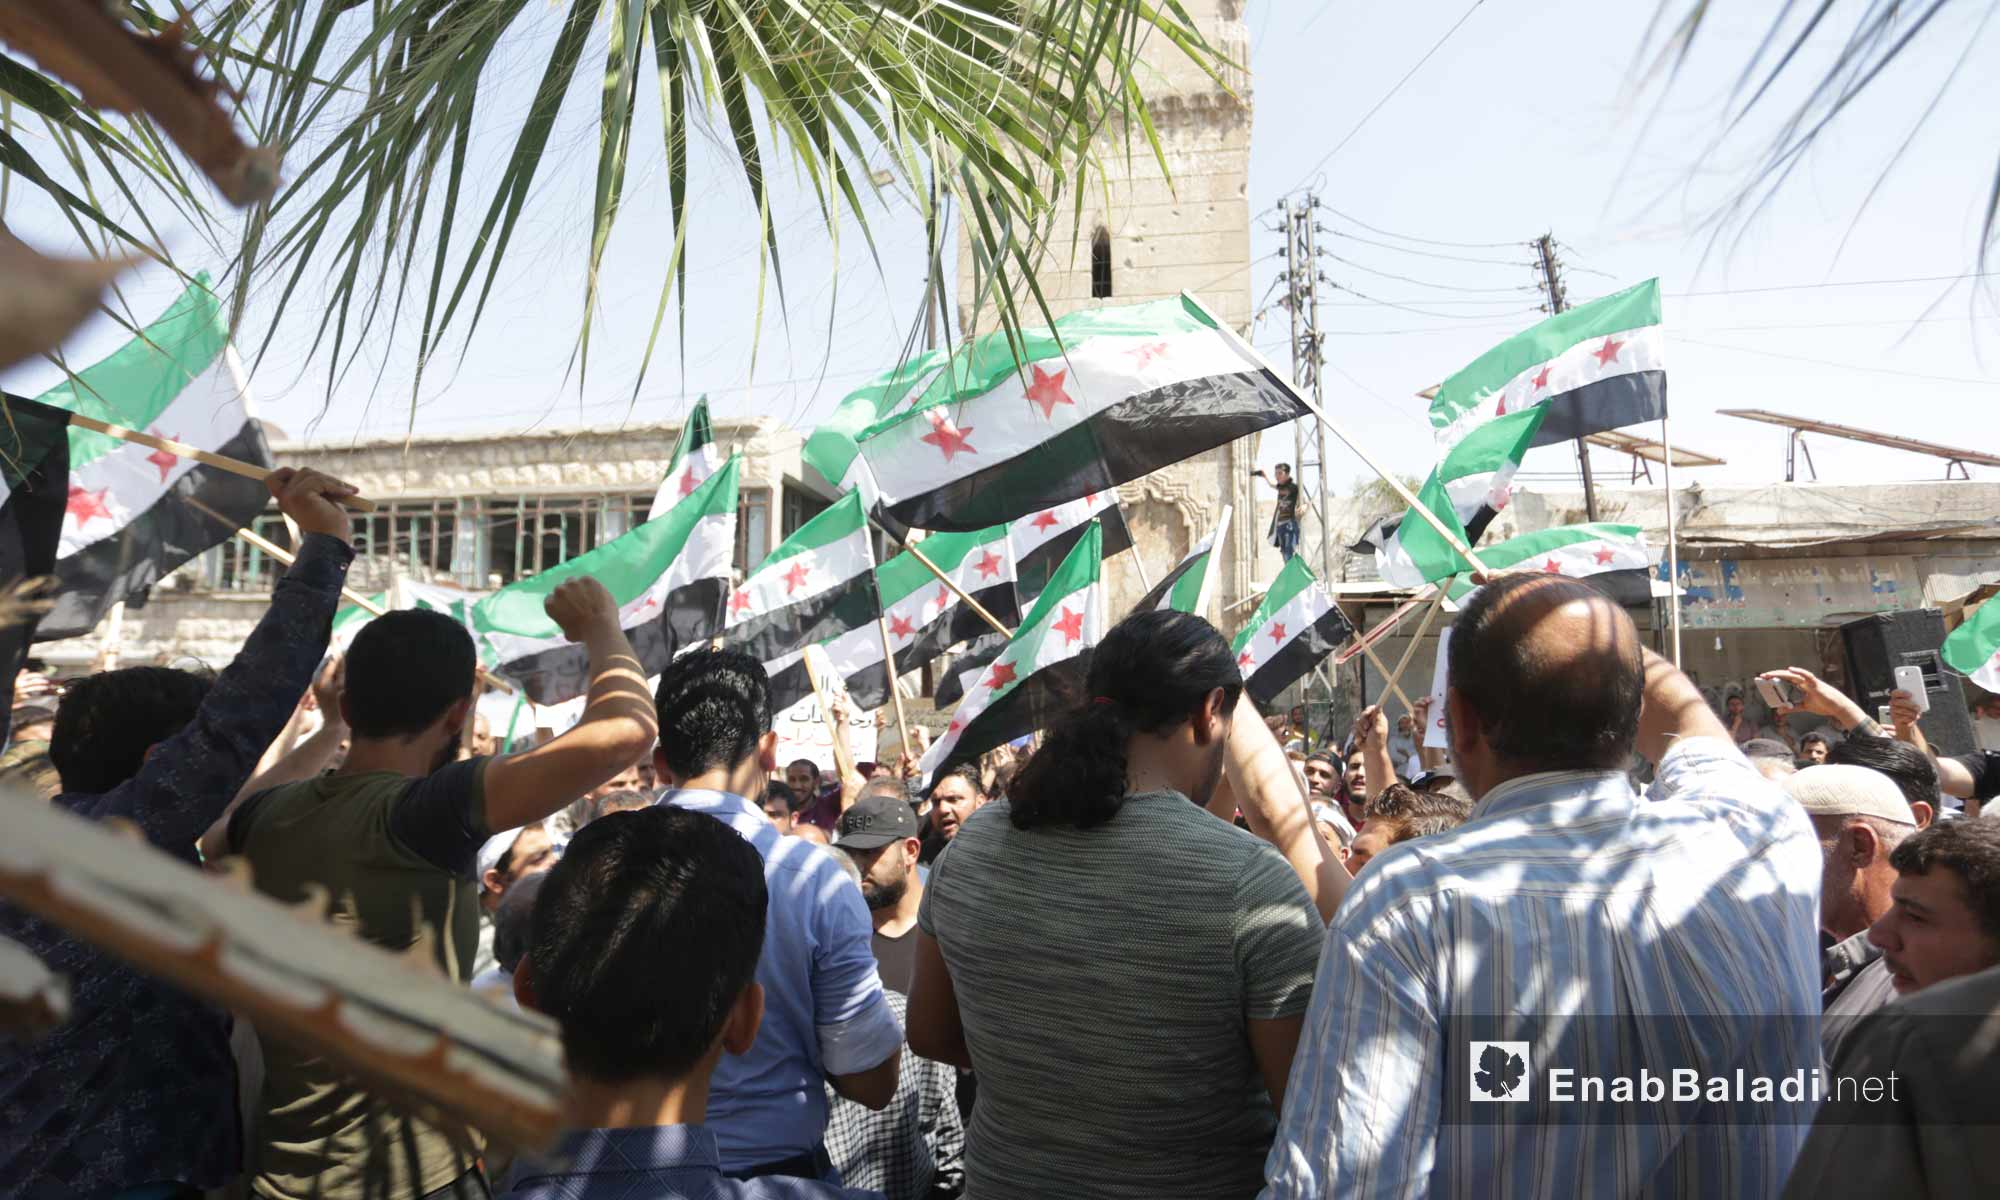 People in Ma`arat al-Nu`man, rural Idlib, protesting against the Sochi deal and demanding the ousting of the Syrian regime – September 6, 2019 (Enab Baladi)